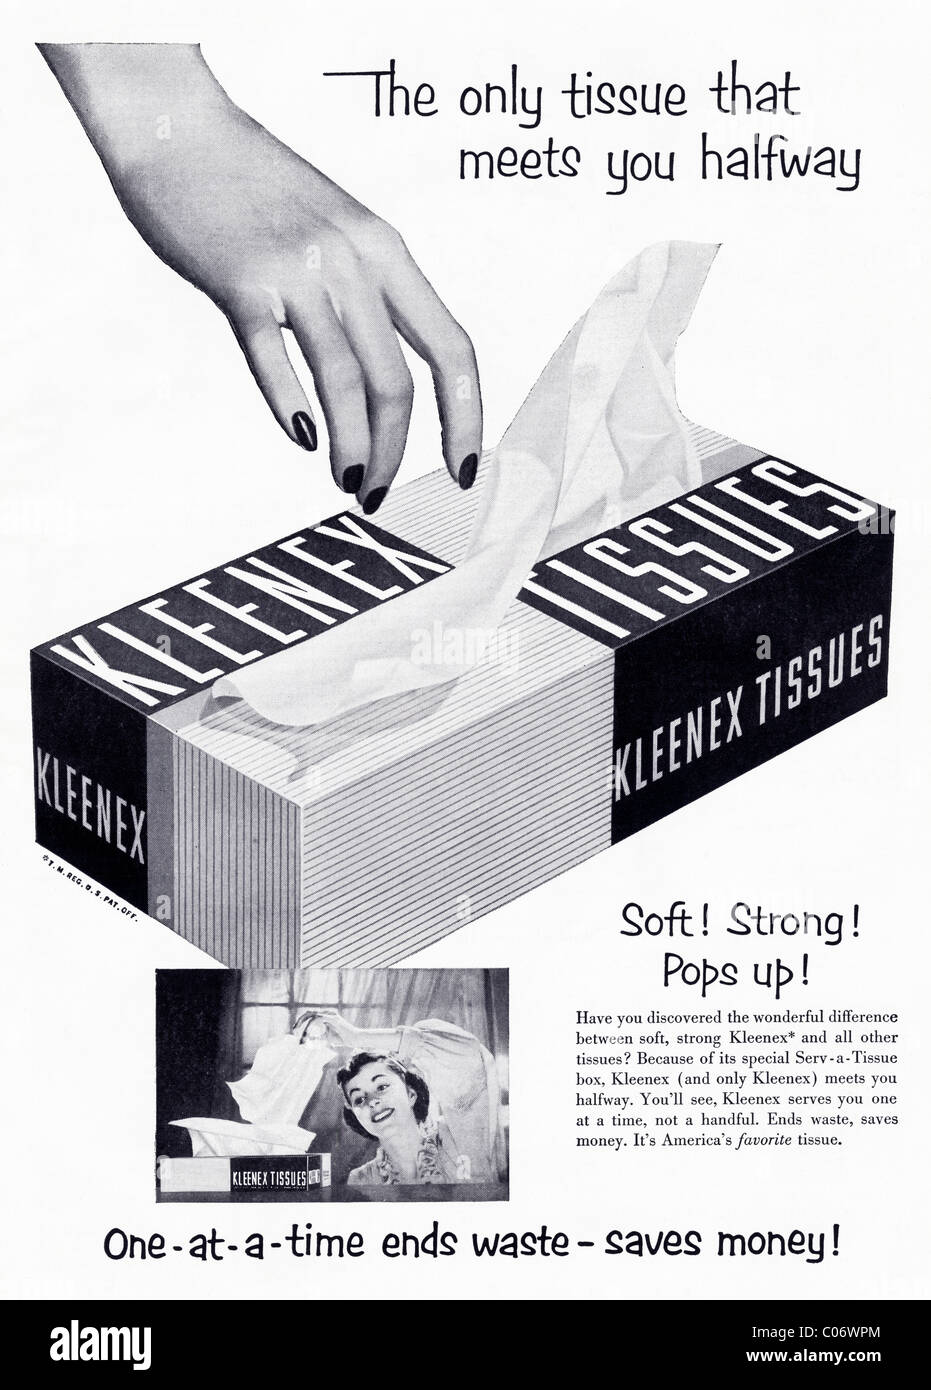 Original 1950s full page advertisement in American consumer magazine for KLEENEX TISSUES - Stock Image